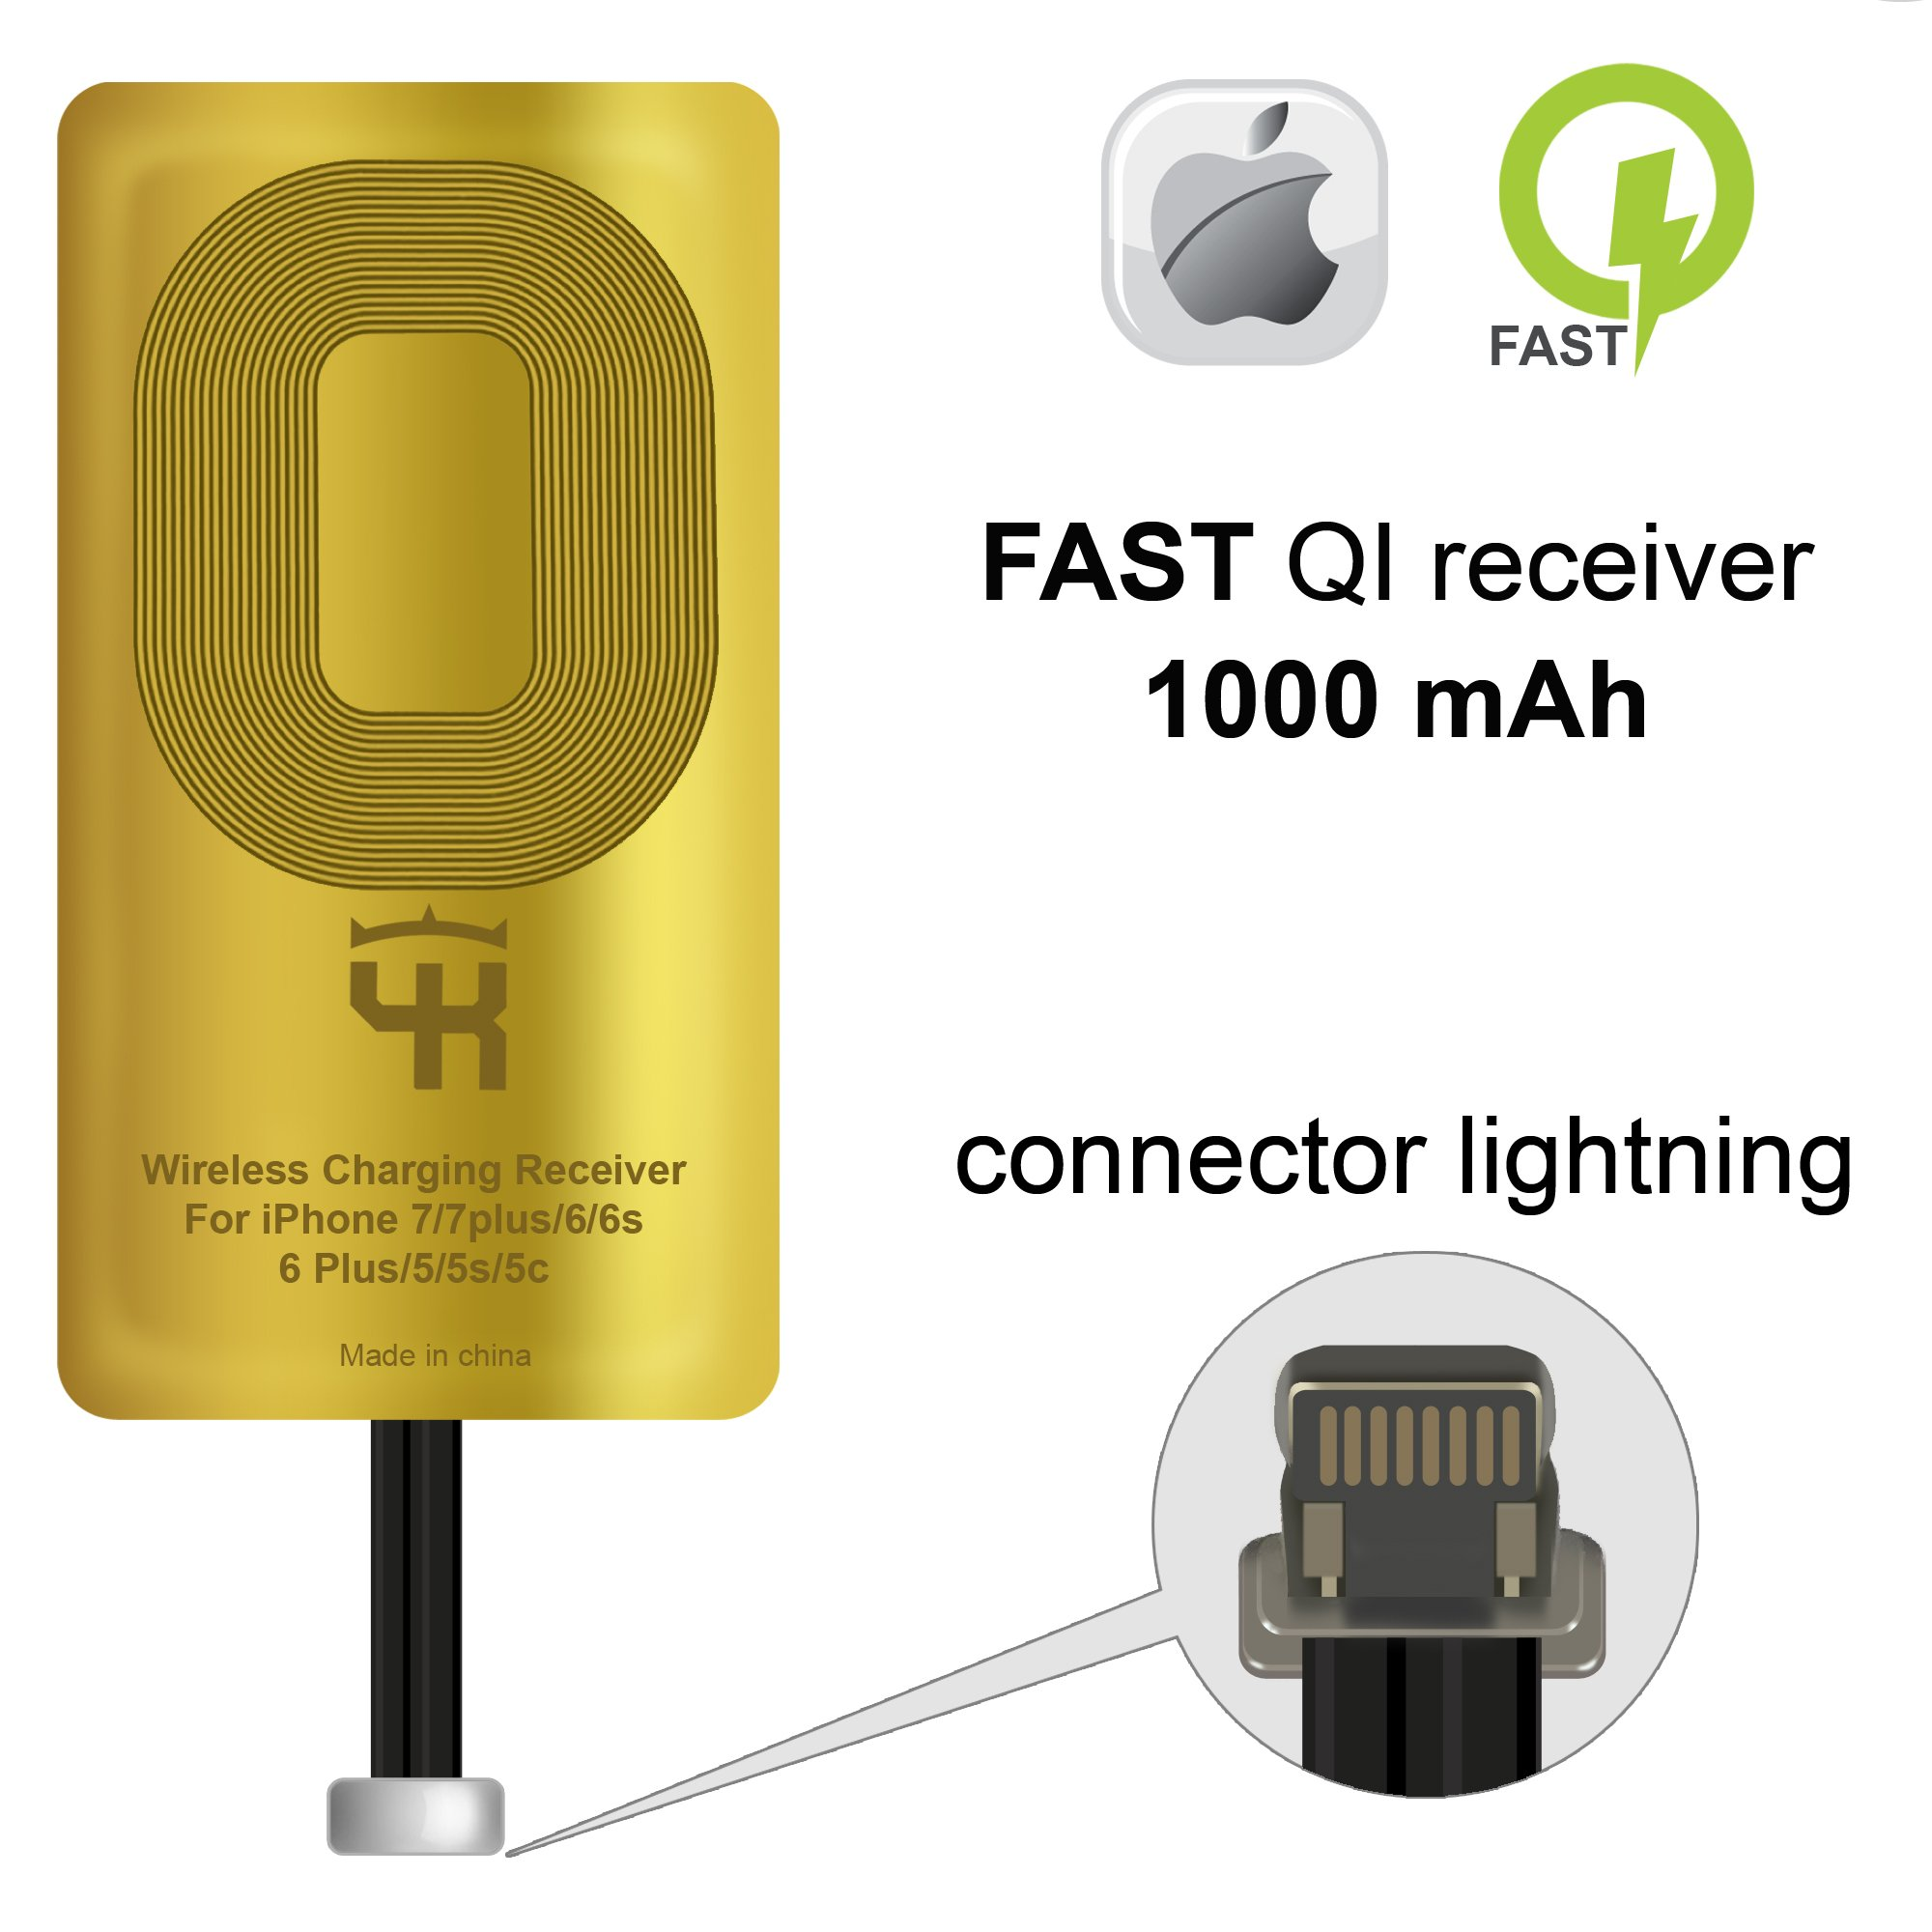 QI Receiver for IPhone 5- 5c- SE- 6- 6 Plus- 7- 7 Plus- IPhone Wireless Receiver- QI Receiver- Charging Receiver - QI Wireless Receiver IPhone- QI Wireless Charging Adapter by YKing